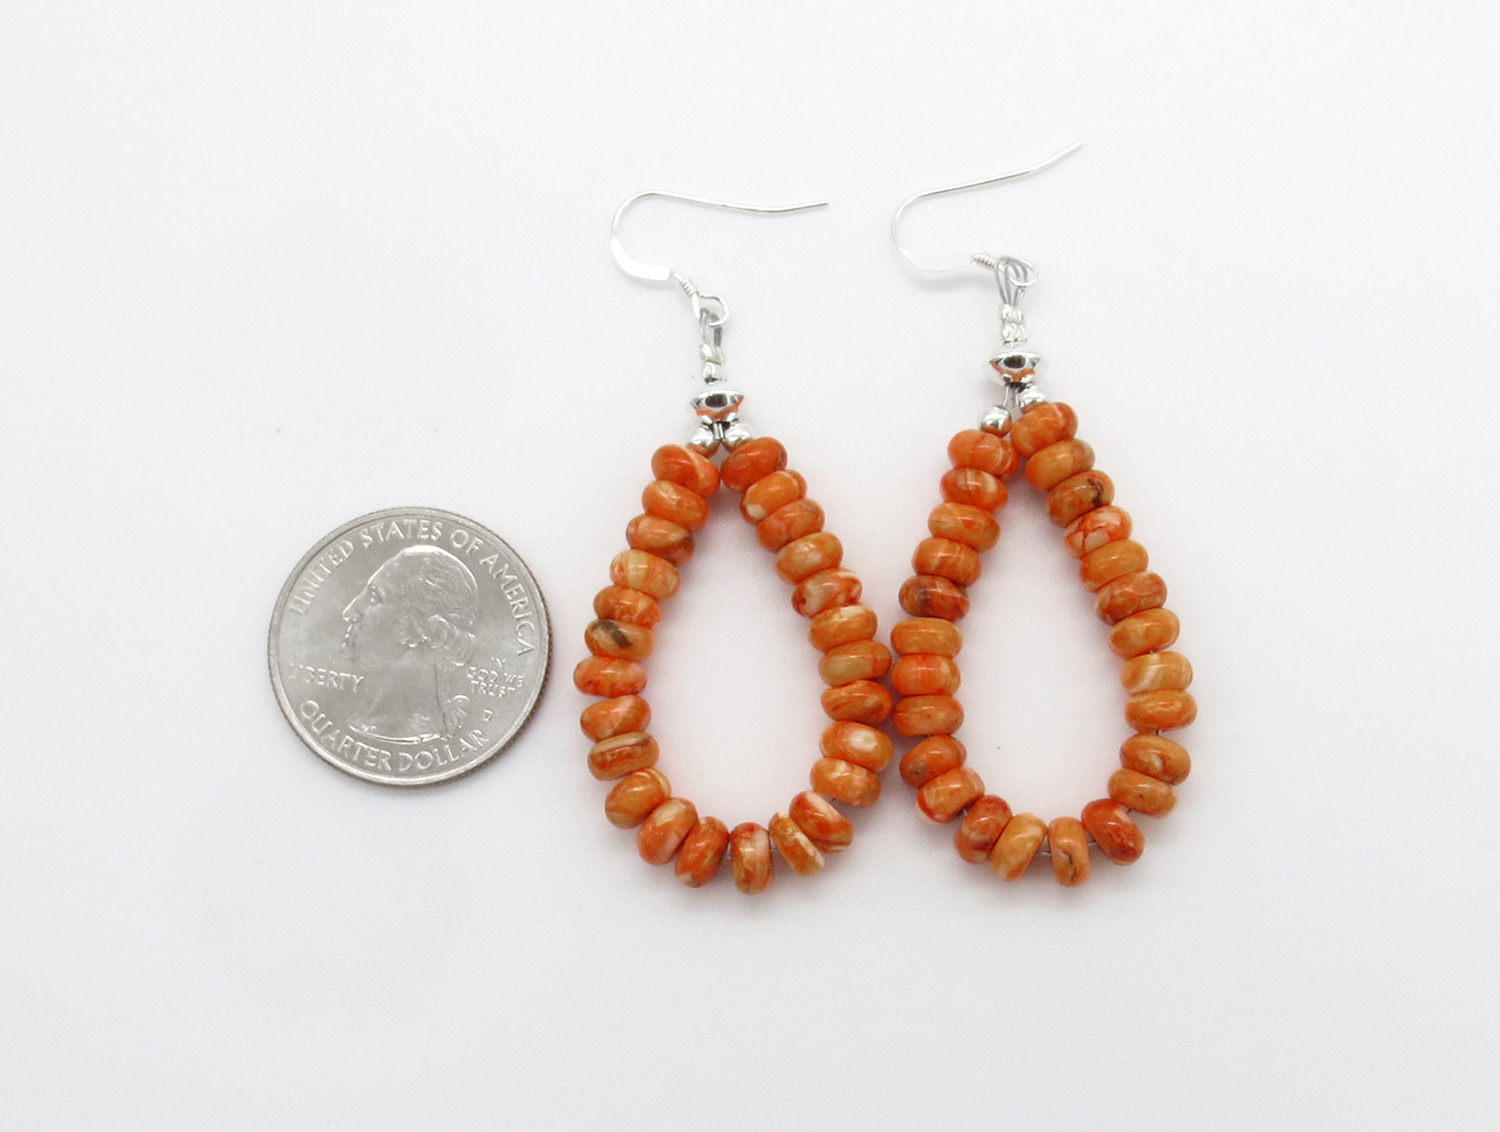 Image 2 of   Orange Spiny Oyster Rondelle Bead Earrings Native American Jewelry - 3867rb